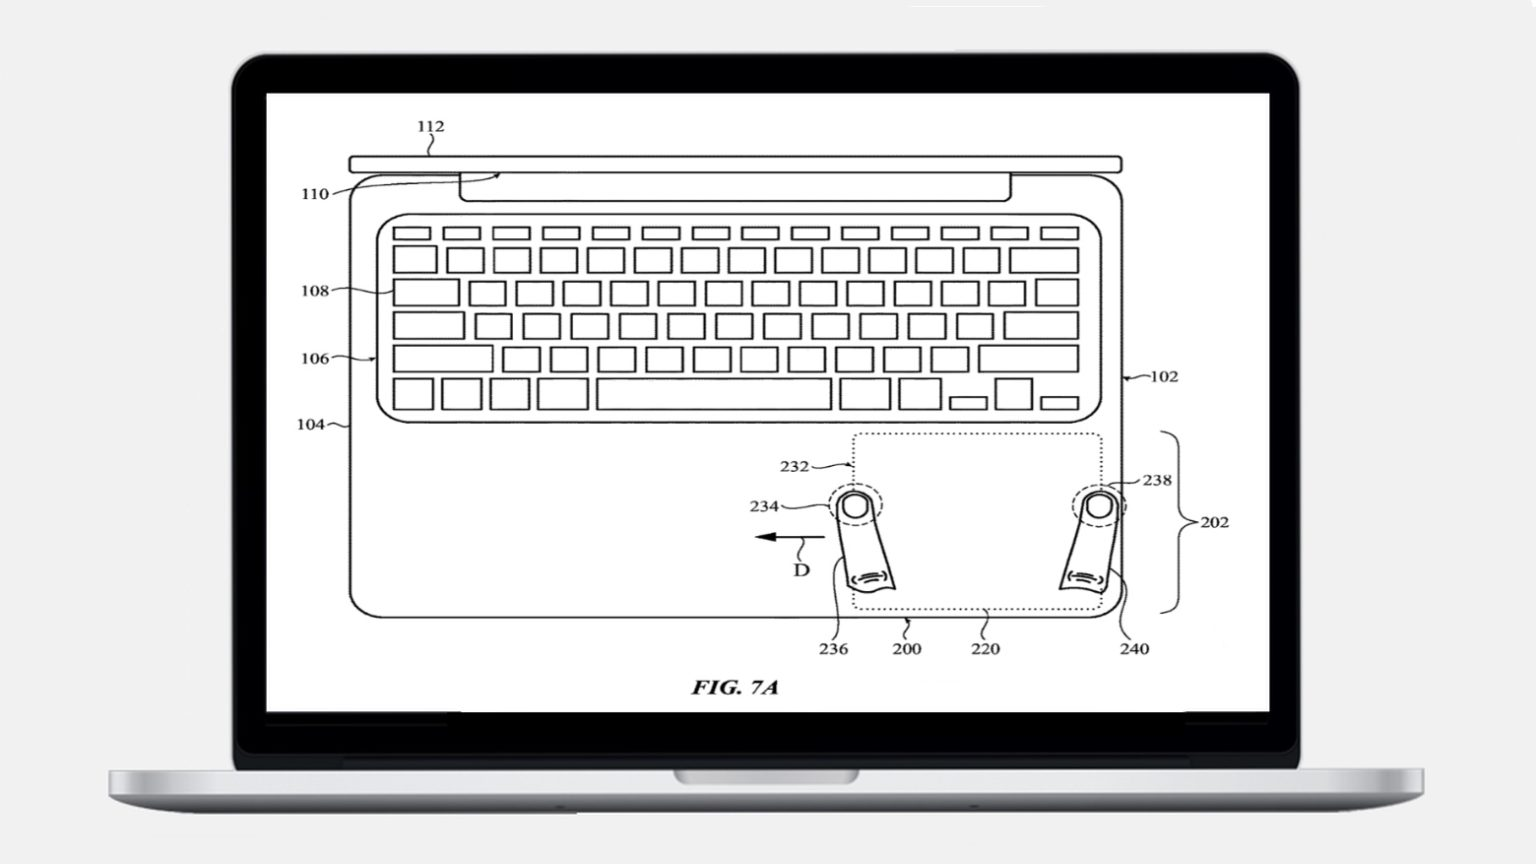 A touch sensitive area could make a MacBook trackpad movable.